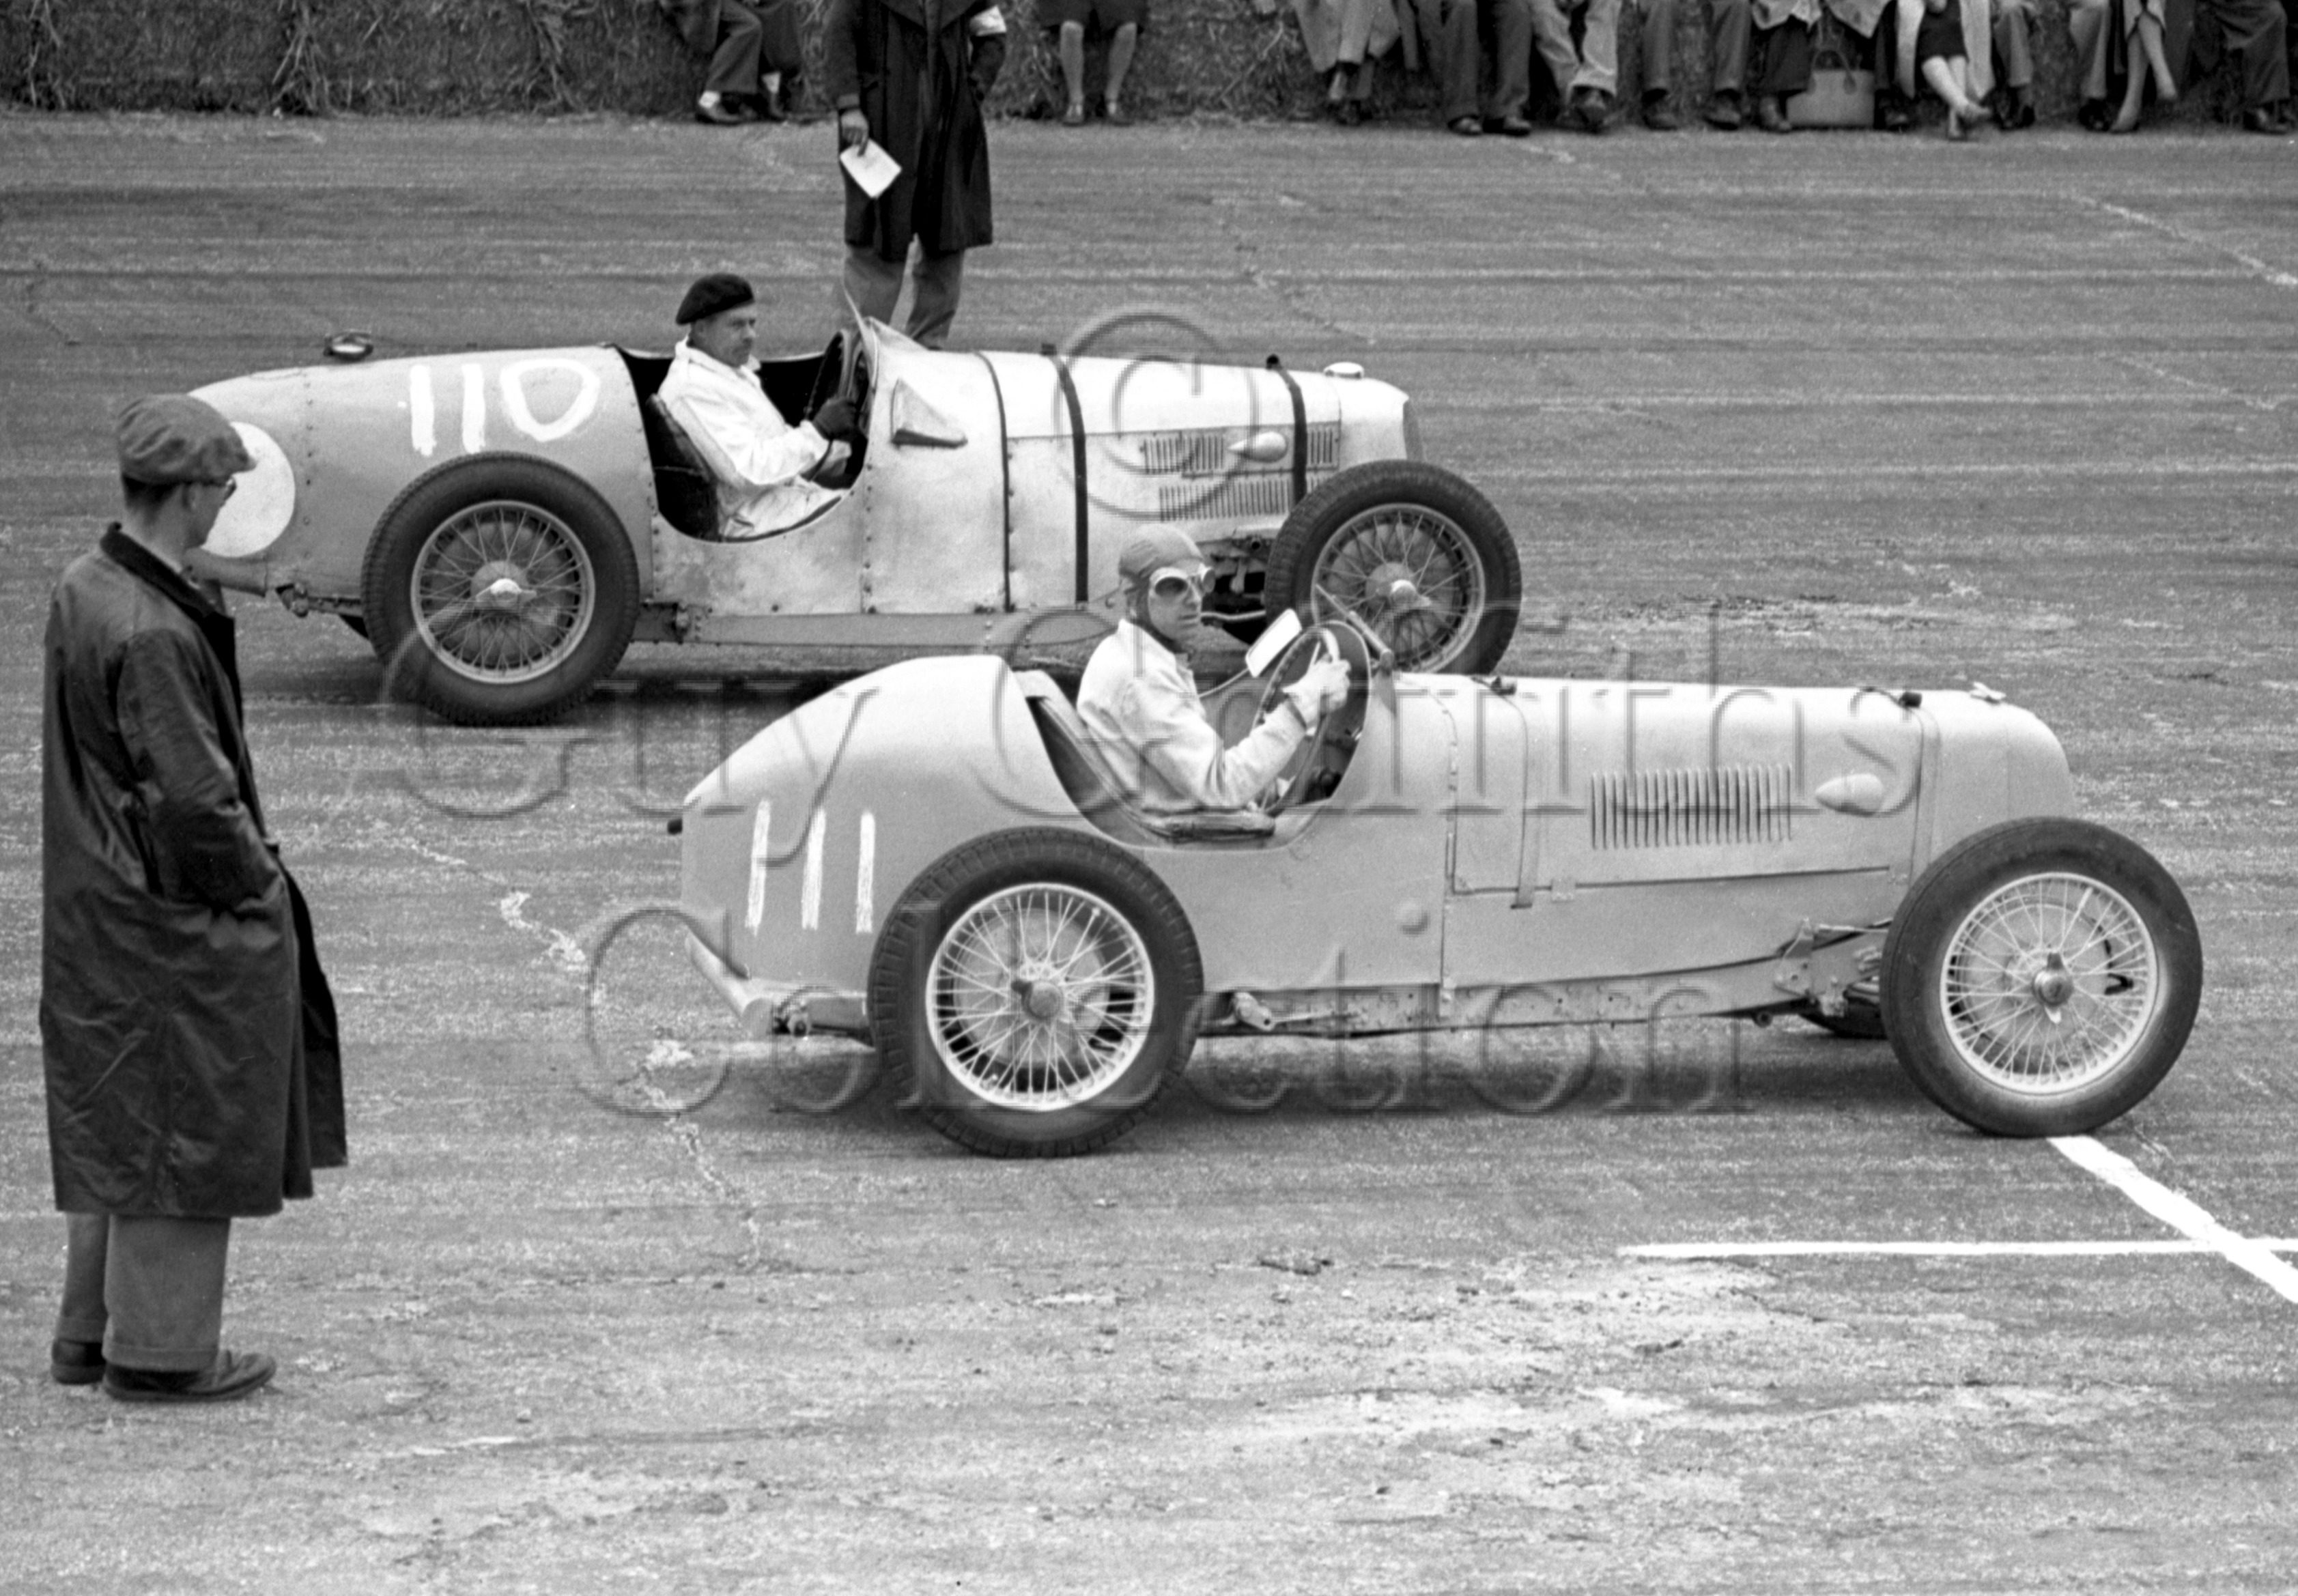 13-66–H-Richards–Riley-No-110–A-Rivers-Fletcher–MG-No-111–Silverstone–23-04-1949.jpg - The Guy Griffiths Collection